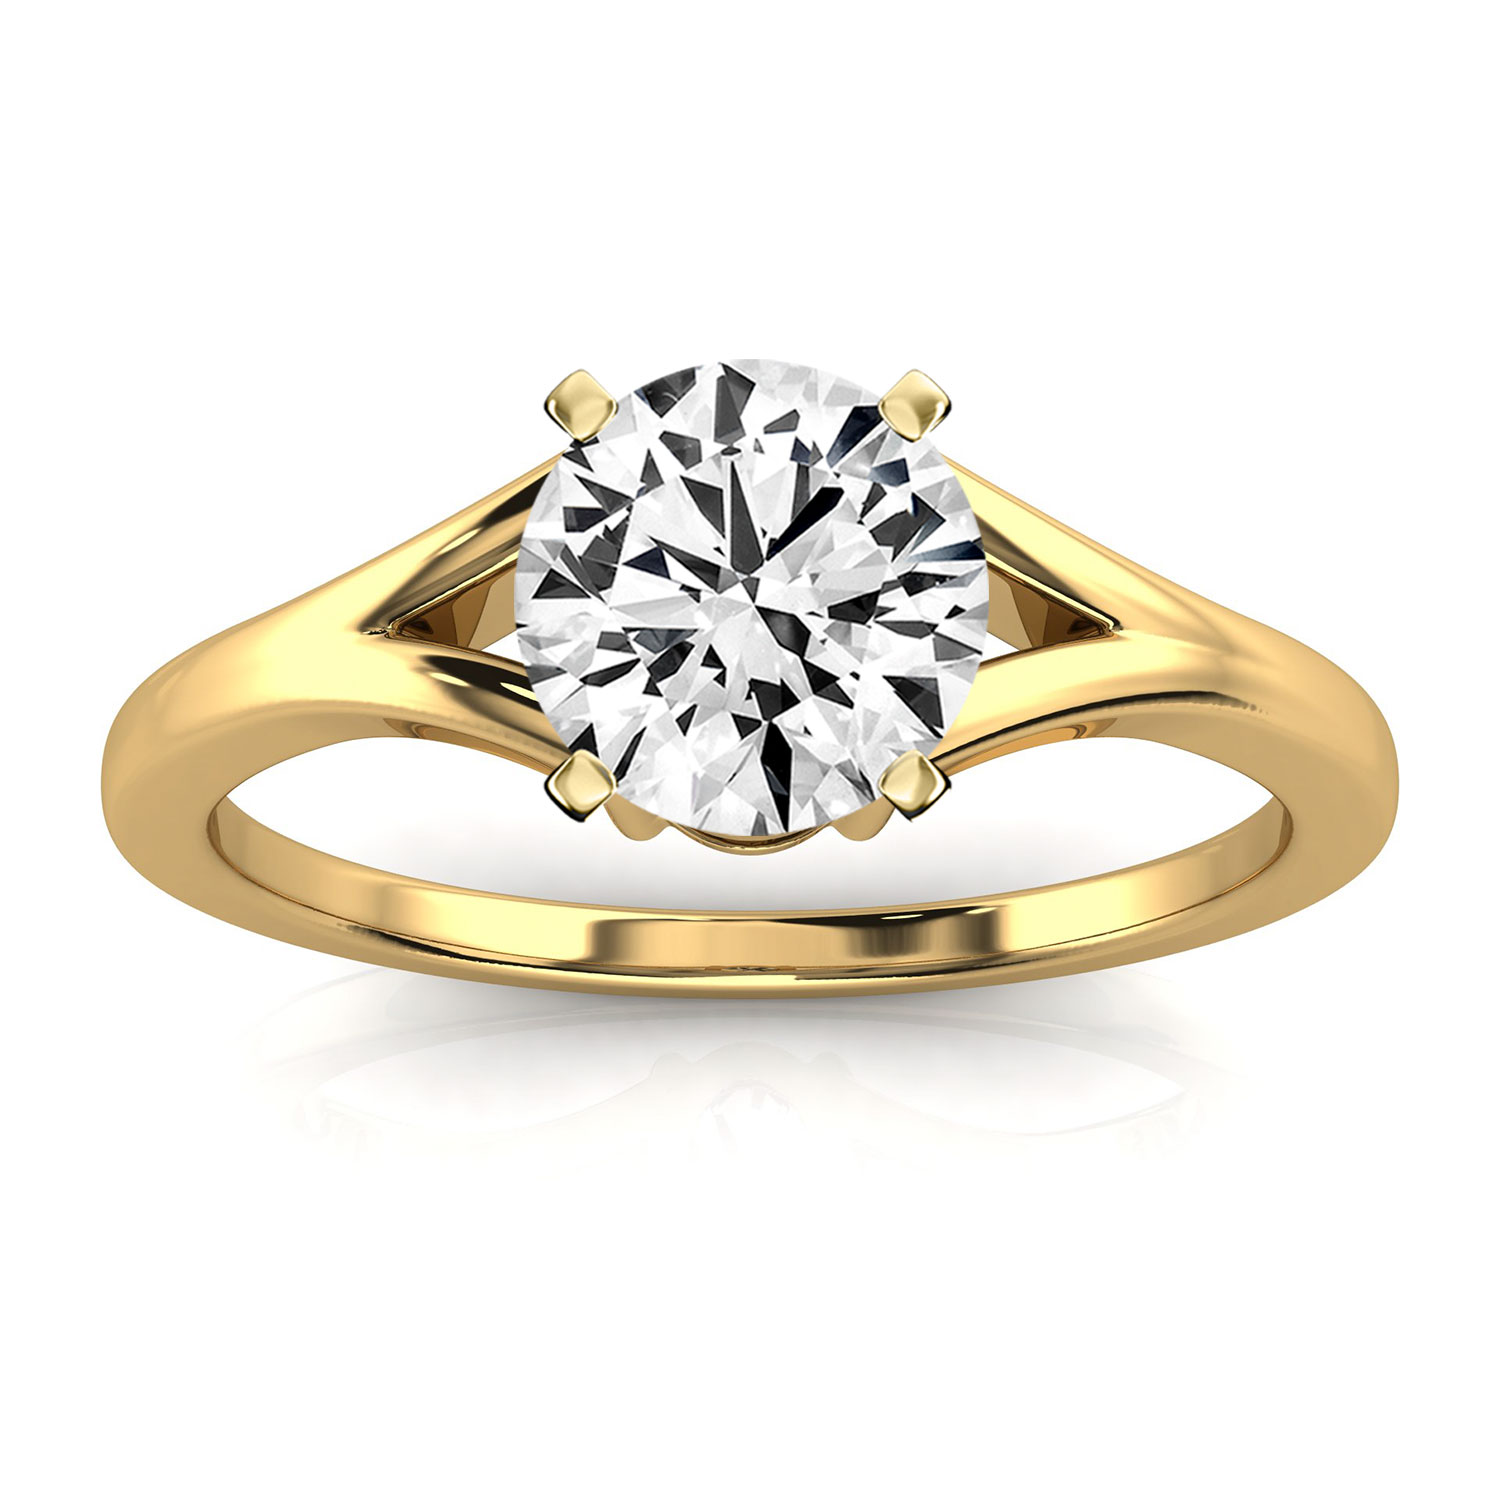 14K Yellow Gold Nikita Petite Solitaire Earthy Organic Design Ring